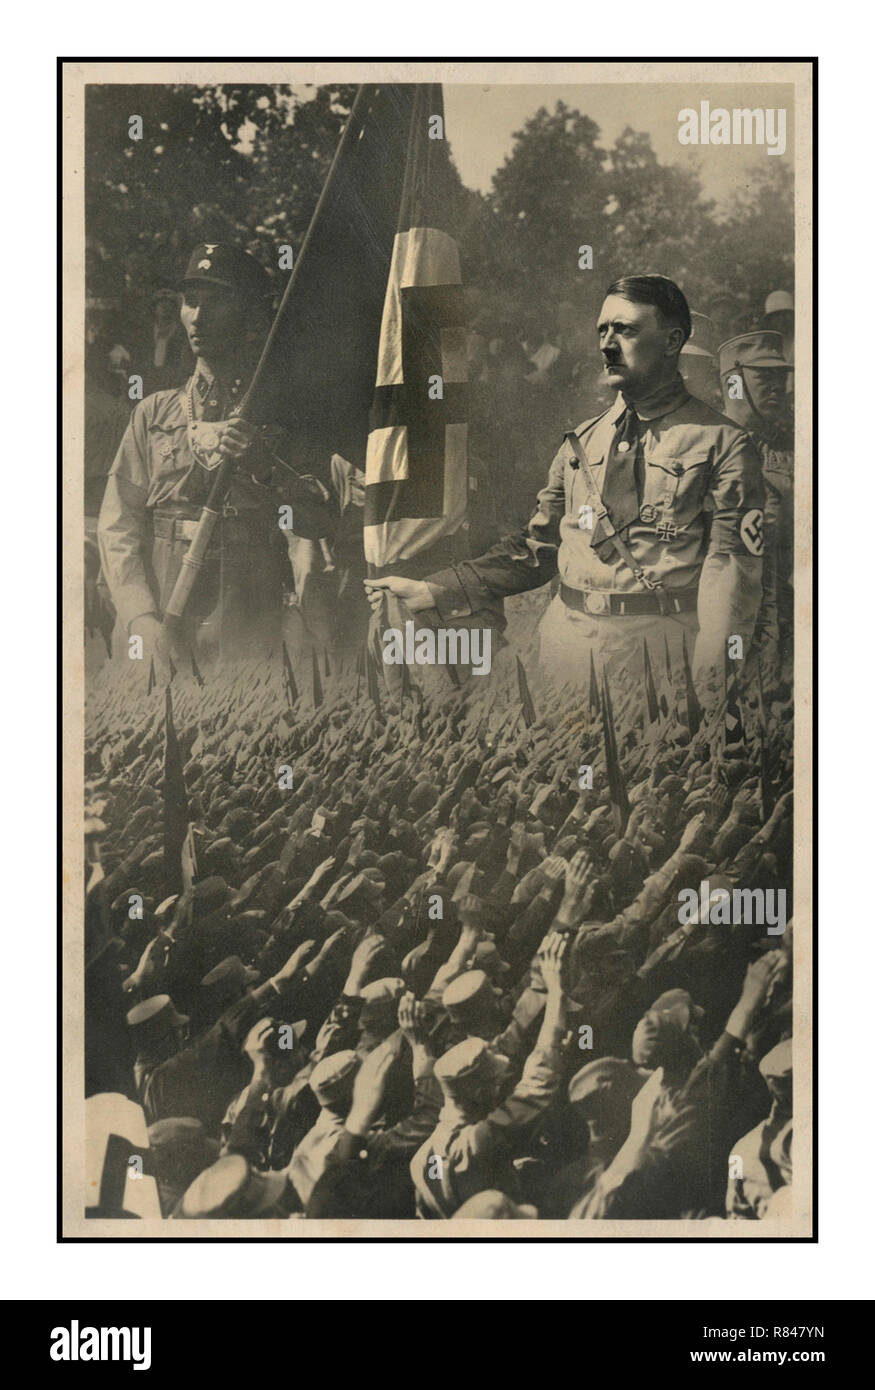 """Vintage 1930's Nazi propaganda postcard showing a crowd of saluting Germans superimposed on an enlarged image of Adolf Hitler with a member of the SA (Storm Trooper) who holds a swastika flag. Munich, Germany, c.1933 Taken by Hoffmann, Hitlers personal photographer... SA, abbreviation of Sturmabteilung (German: """"Assault Division""""), byname Storm Troopers or Brownshirts, German Sturmtruppen or Braunhemden, in the German Nazi Party, a paramilitary organization whose methods of violent intimidation played a key role in Adolf Hitler's rise to power. - Stock Image"""